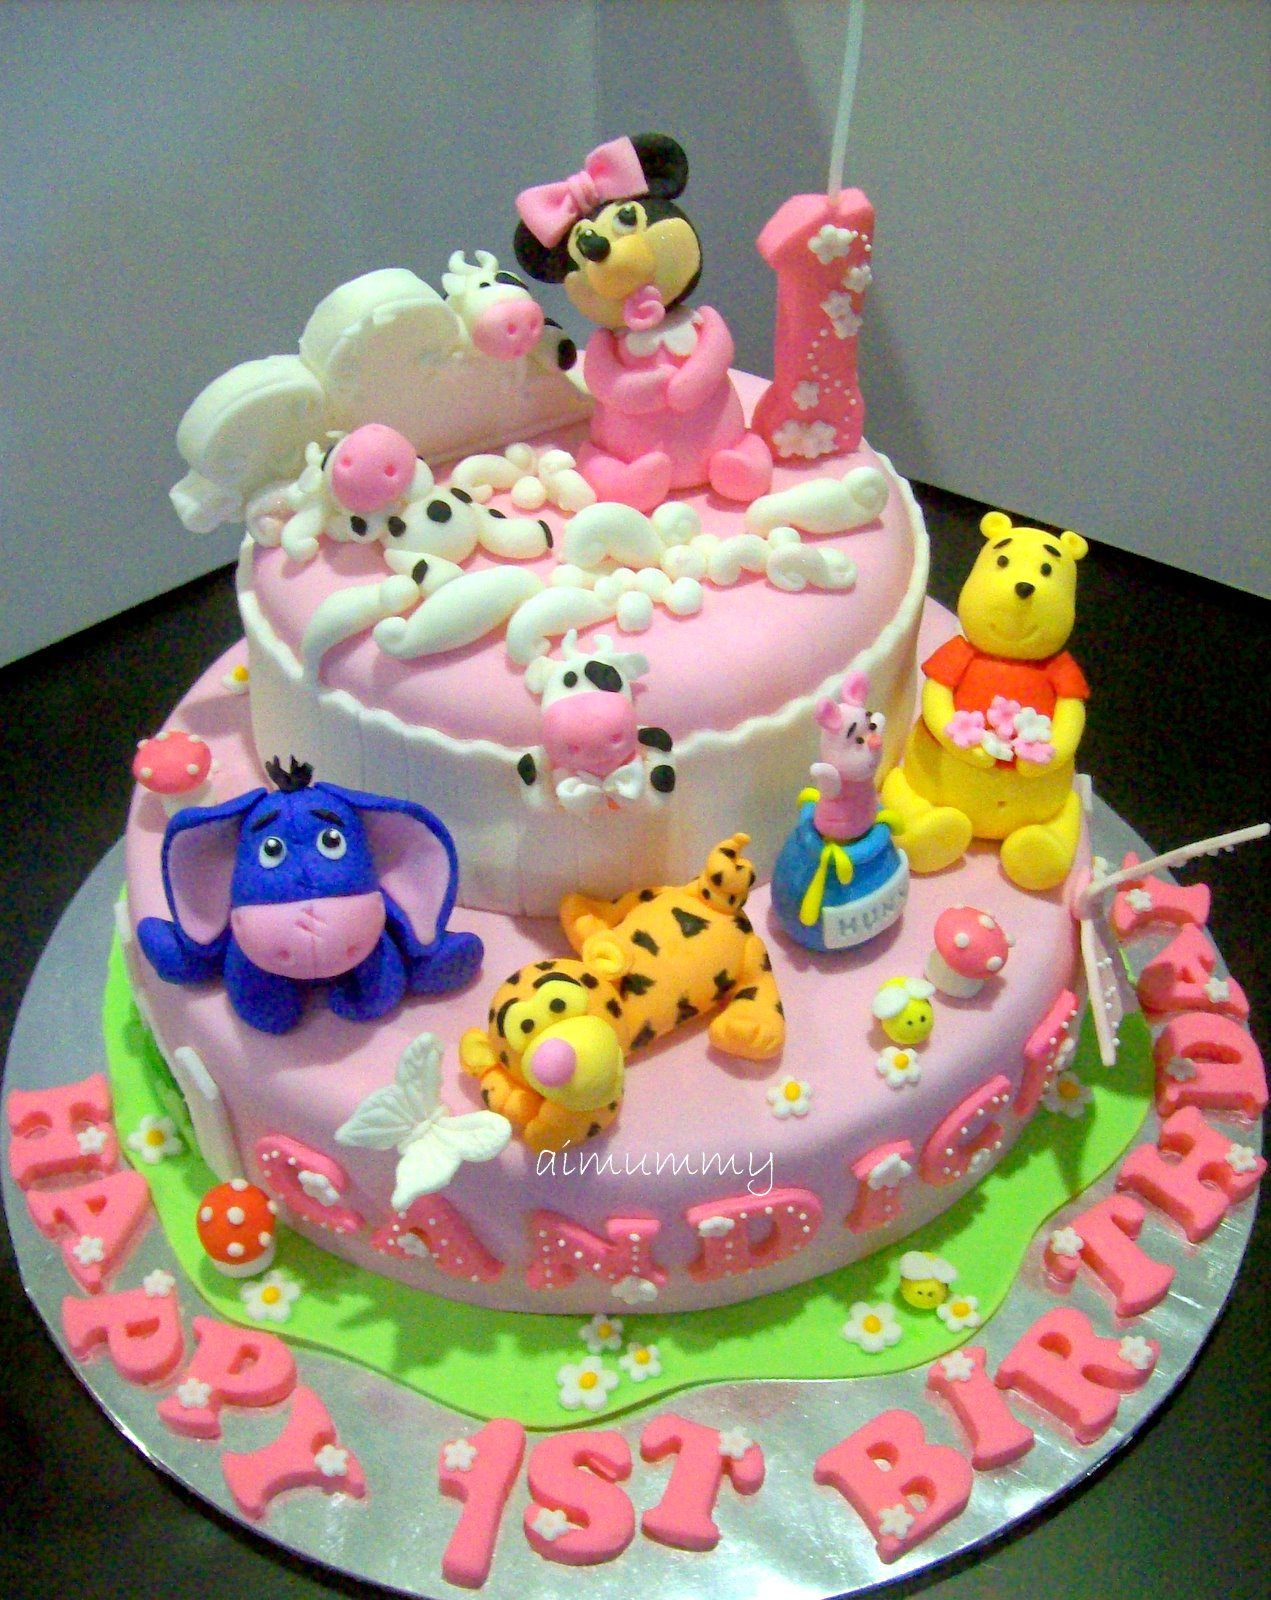 AiMummy: Another sweet pooh & minnie cake